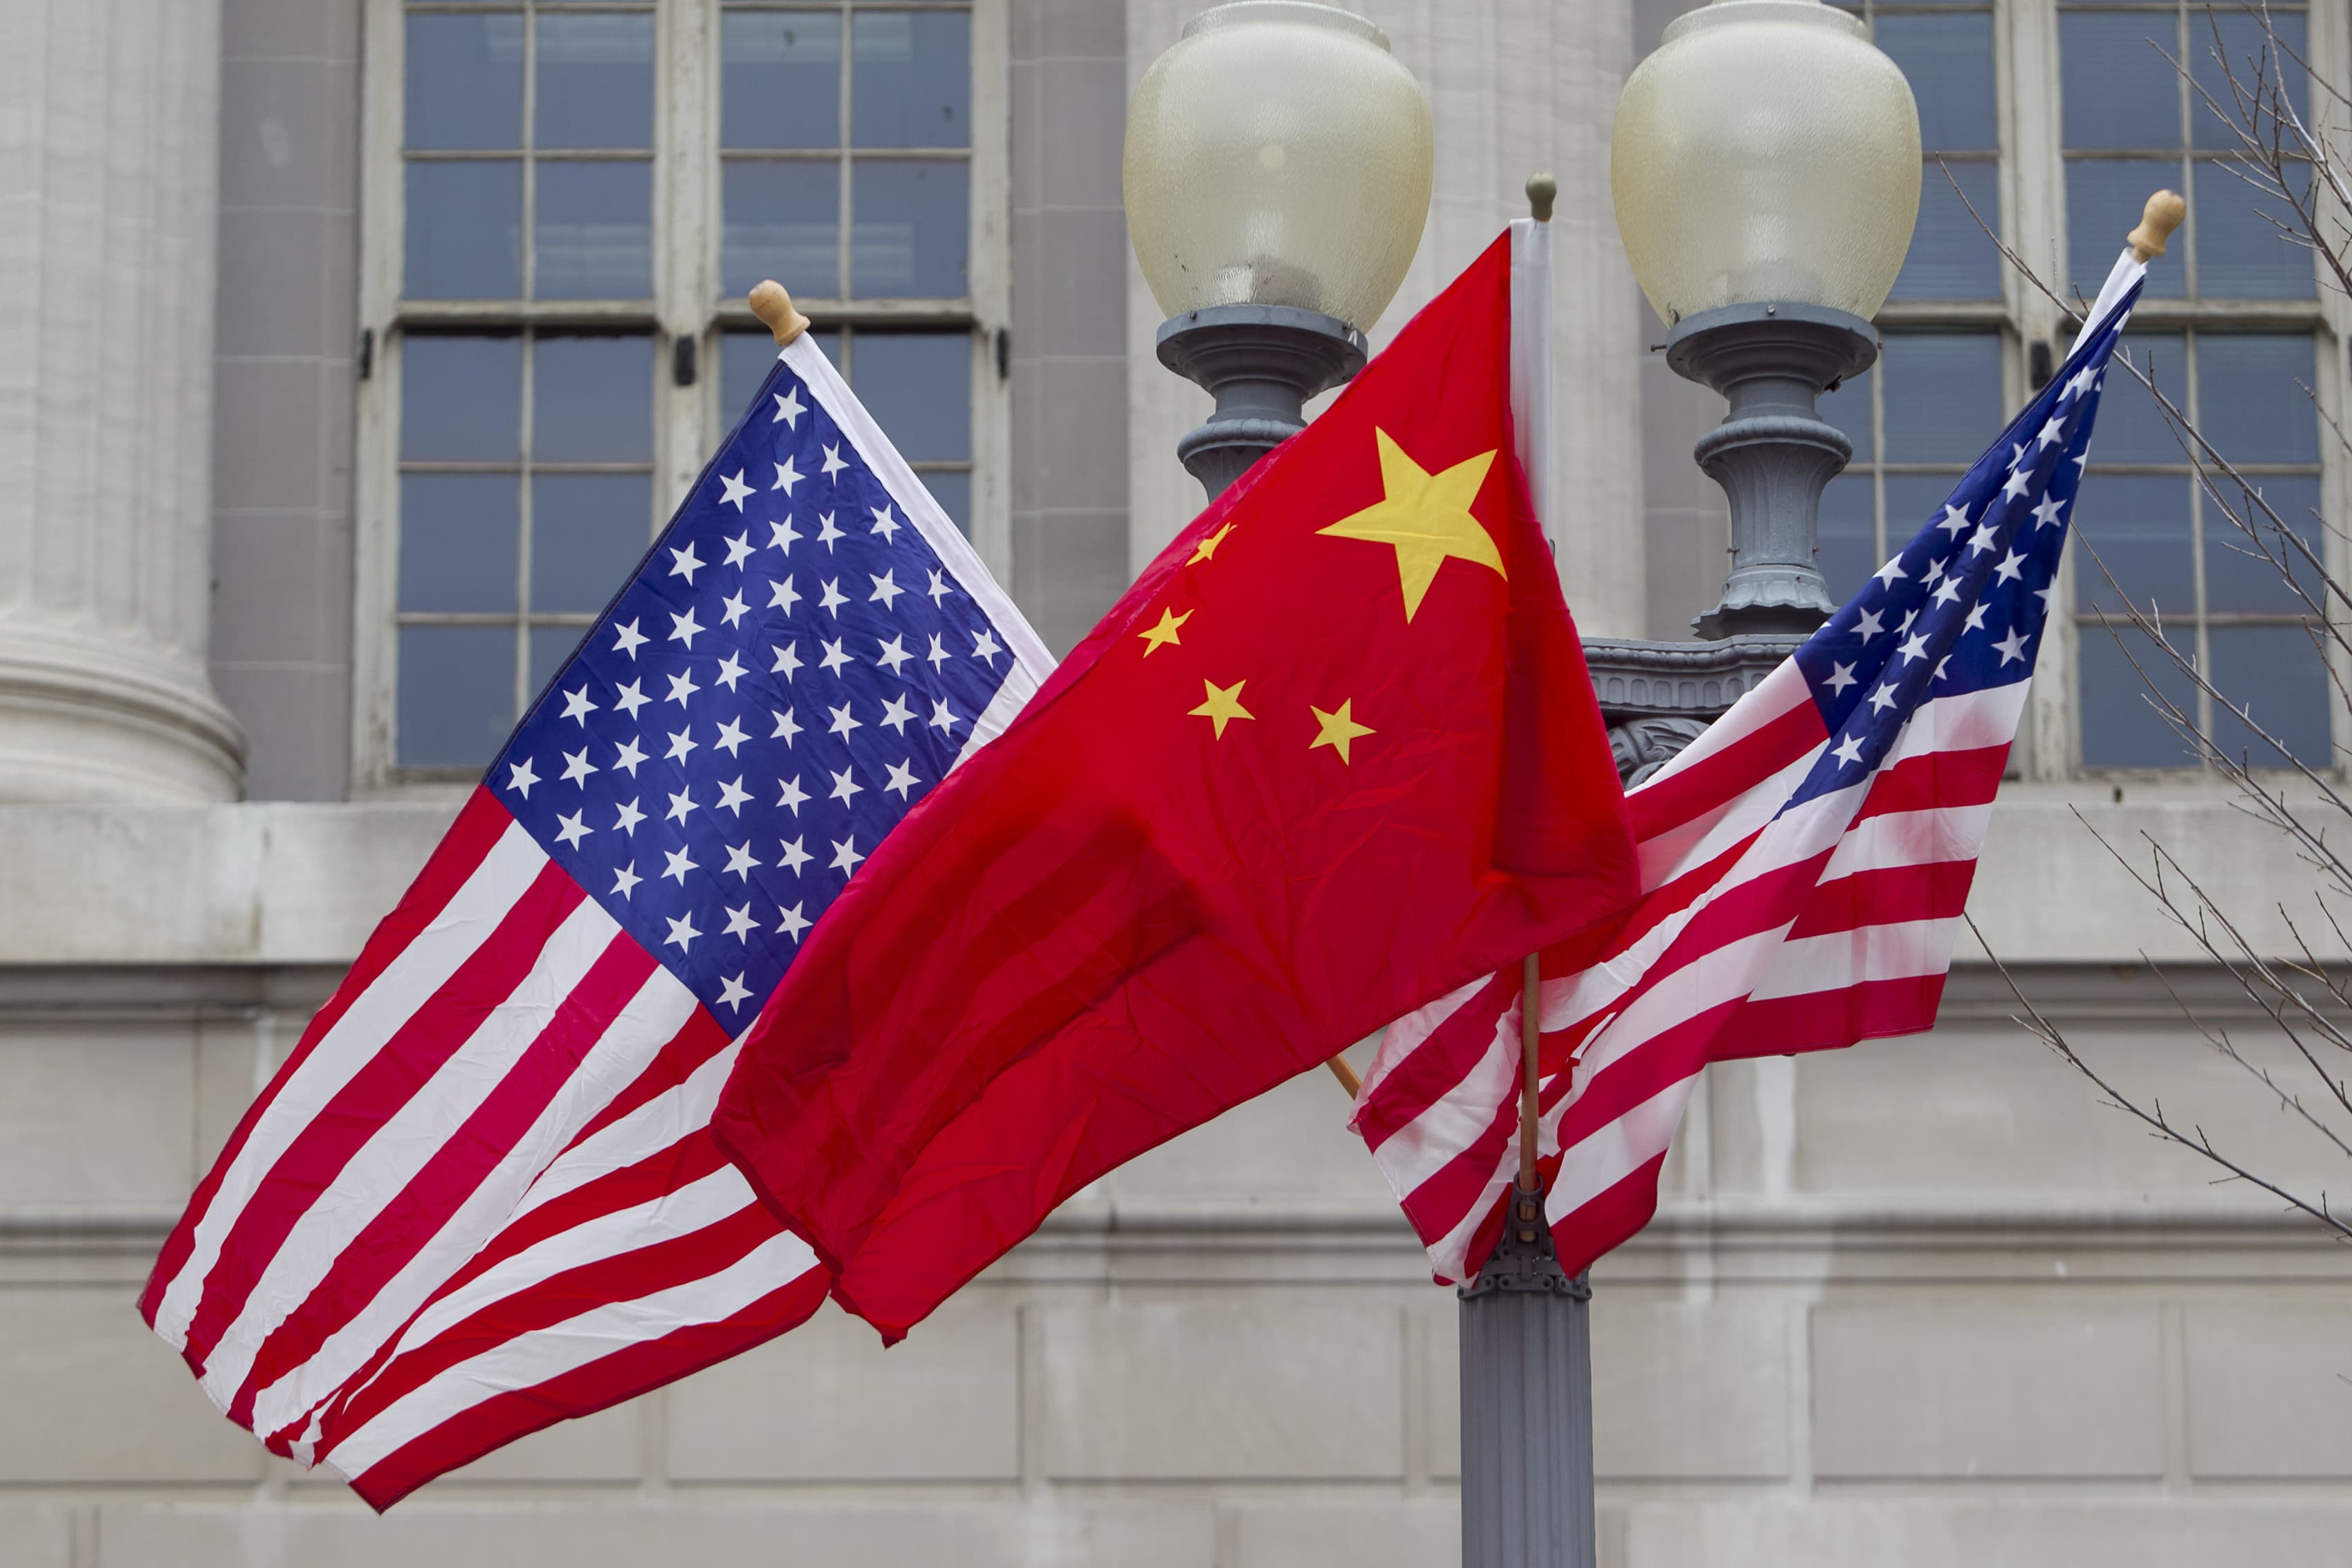 Think tank explains why it's 'pointless' to delist Chinese companies from U.S. stock markets